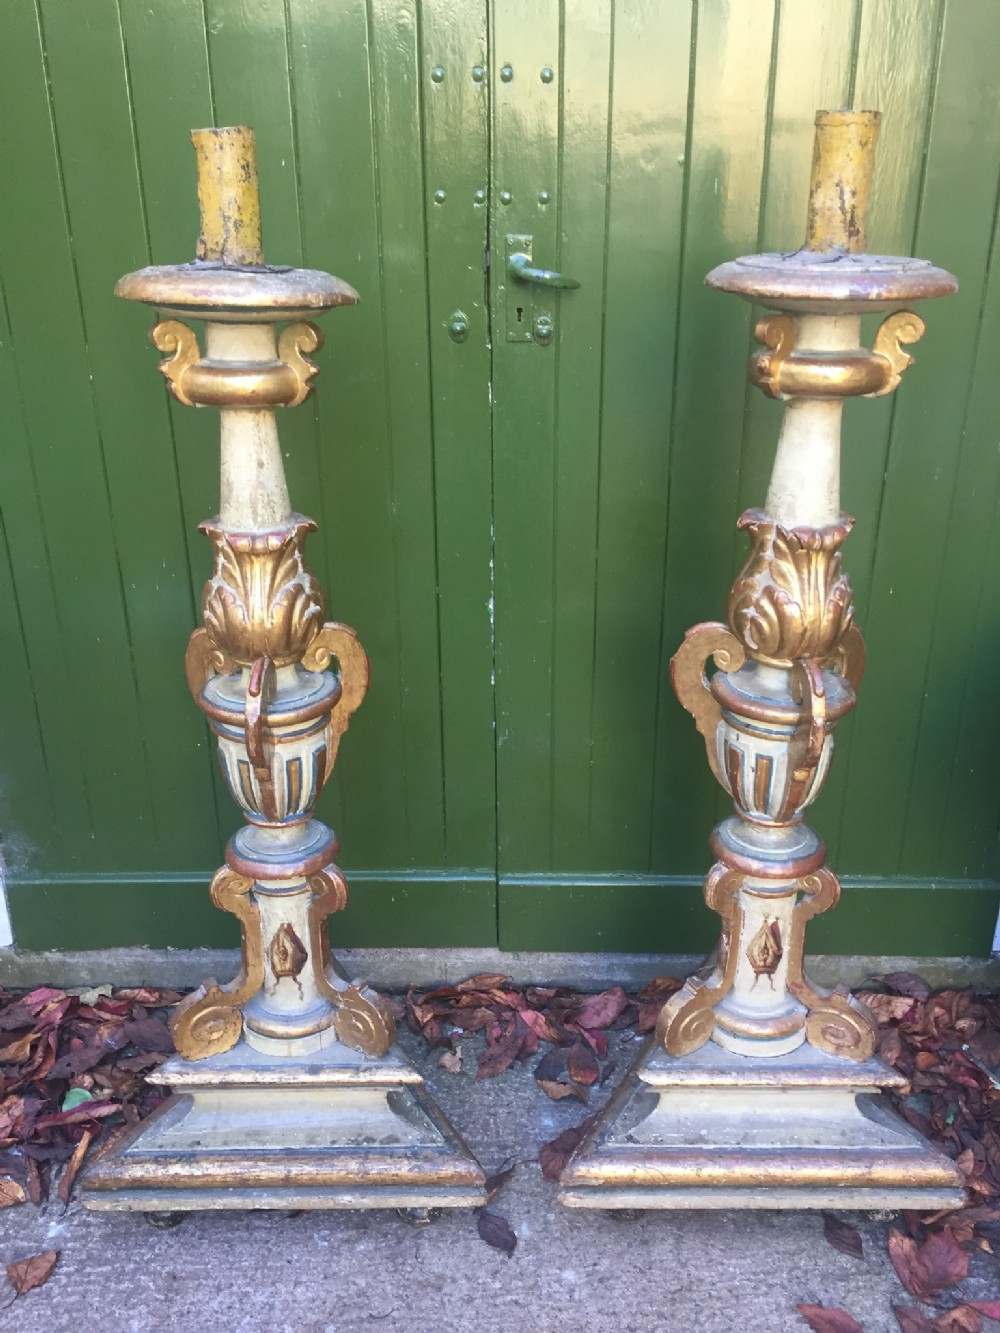 Large pair of c18th giltwood decorated baroque style altar type candle holders of impressive proportions 512179 www leesantiquesworcester com